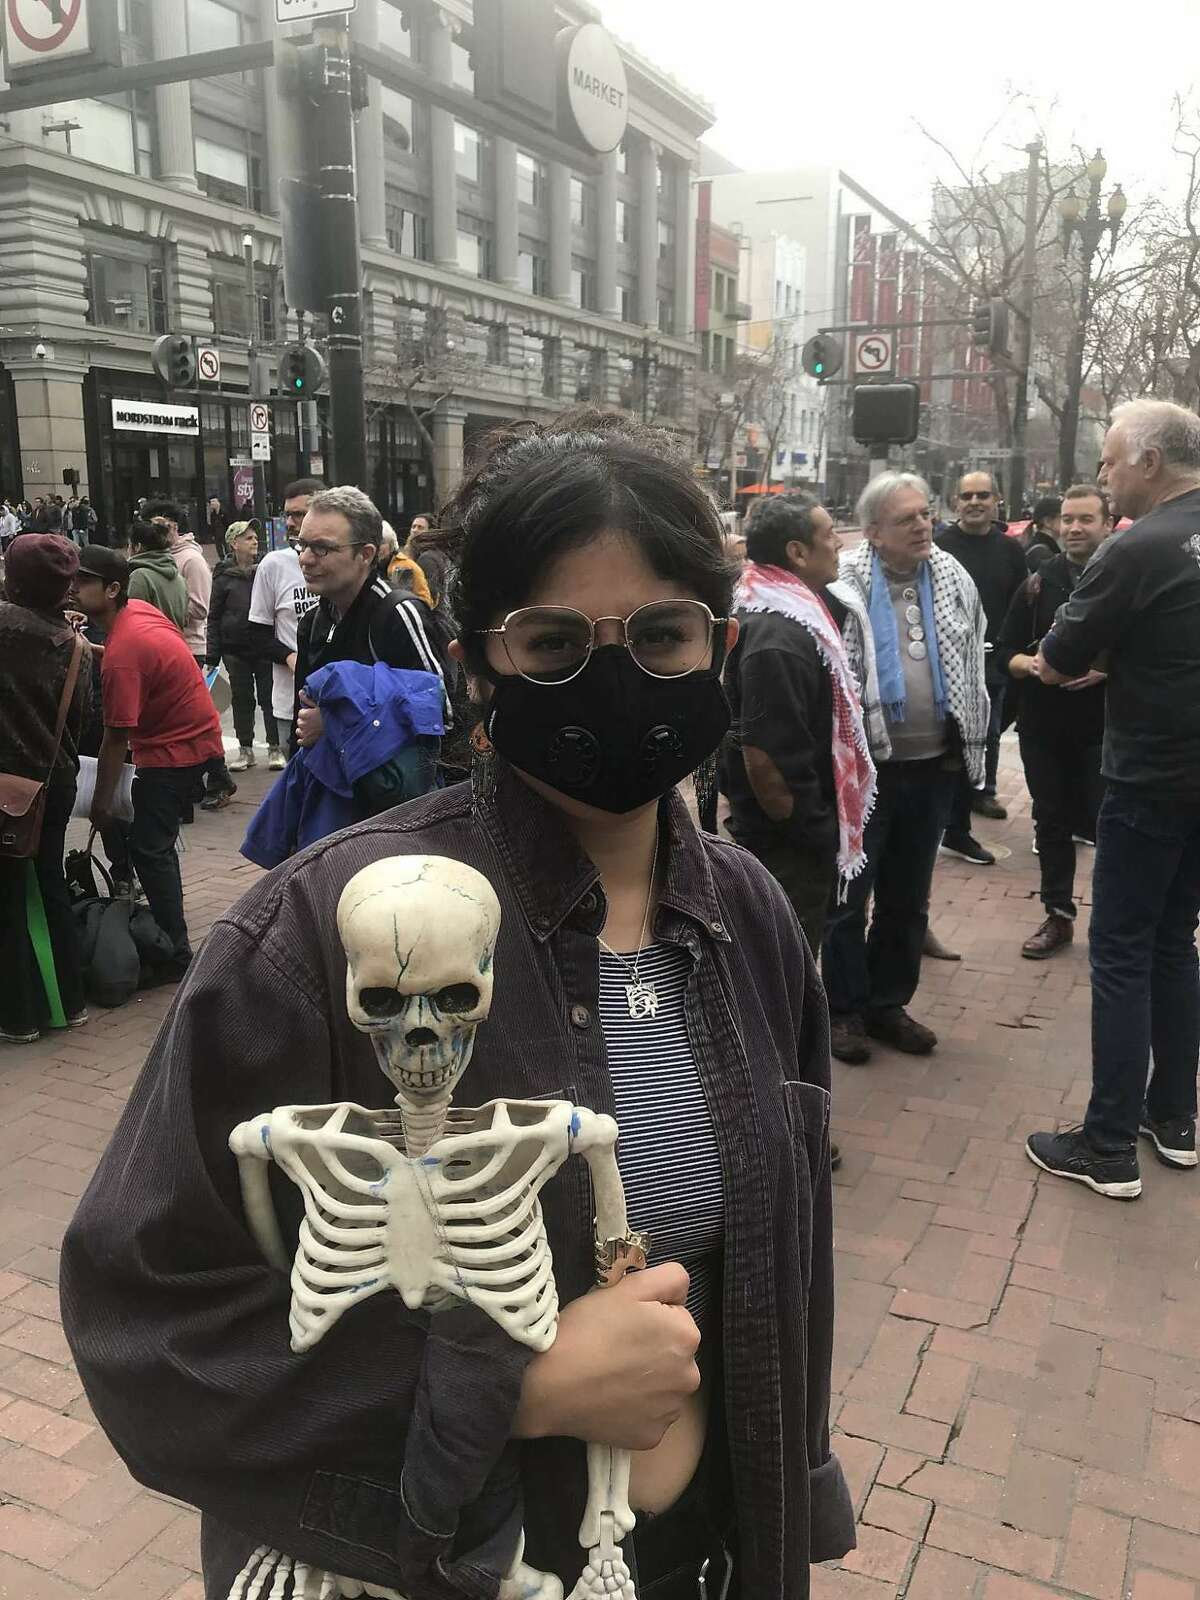 Clara Saenzpardo, 28, of Oakland, joined anti-war protesters during Saturday's march from the cable car turnaround to Union Square